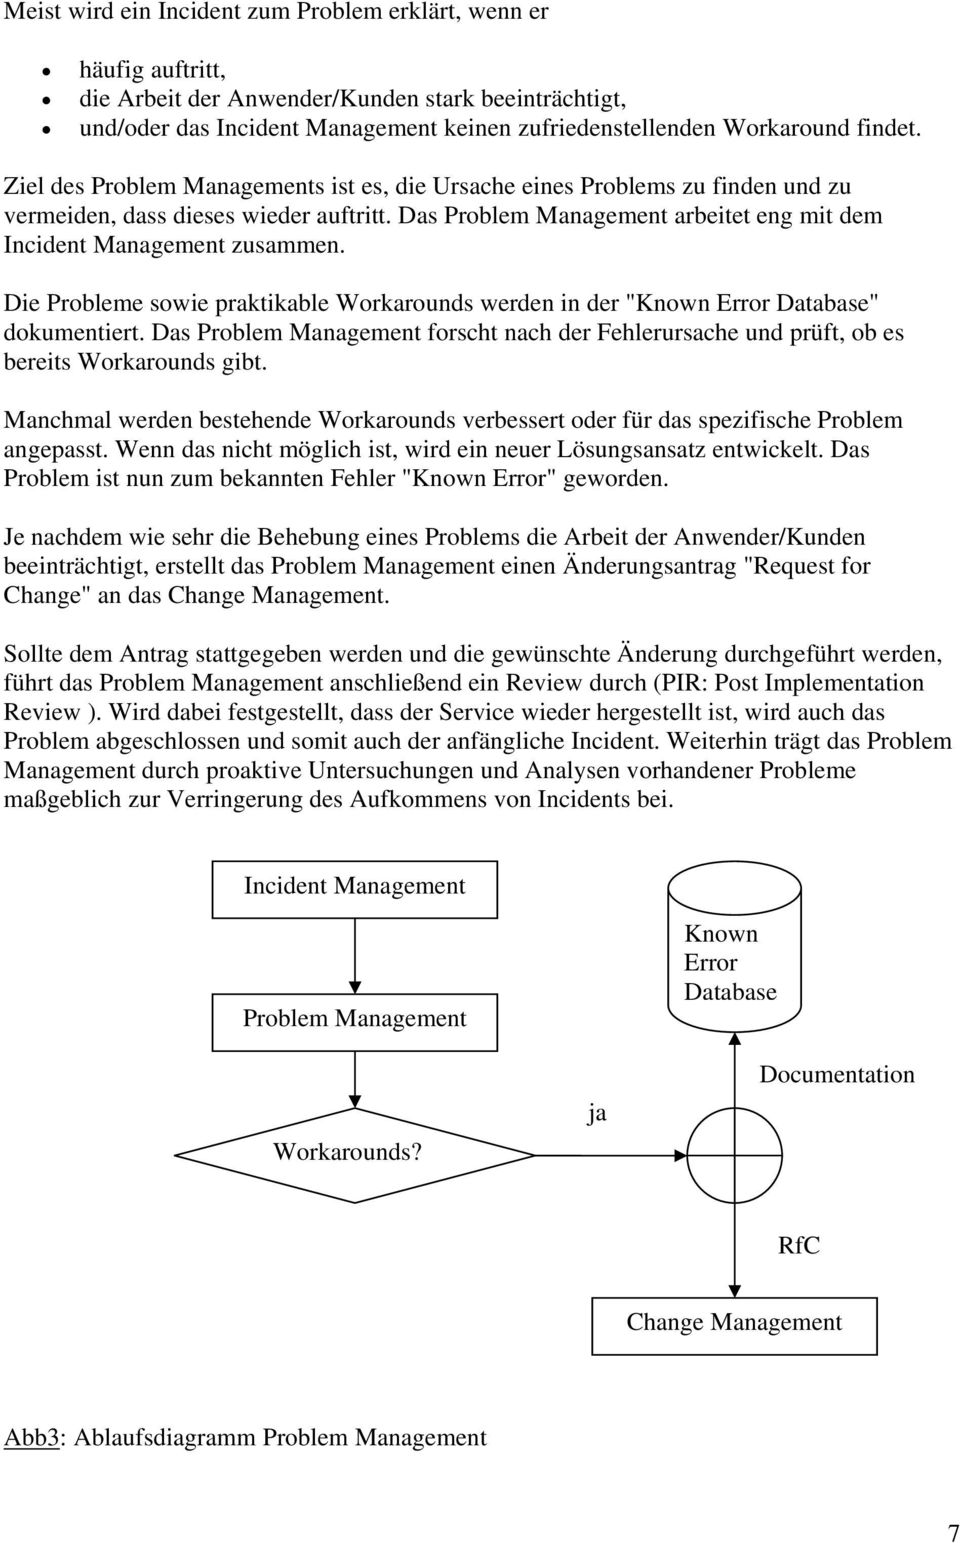 "Das Problem Management arbeitet eng mit dem Incident Management zusammen. Die Probleme sowie praktikable Workarounds werden in der ""Known Error Database"" dokumentiert."